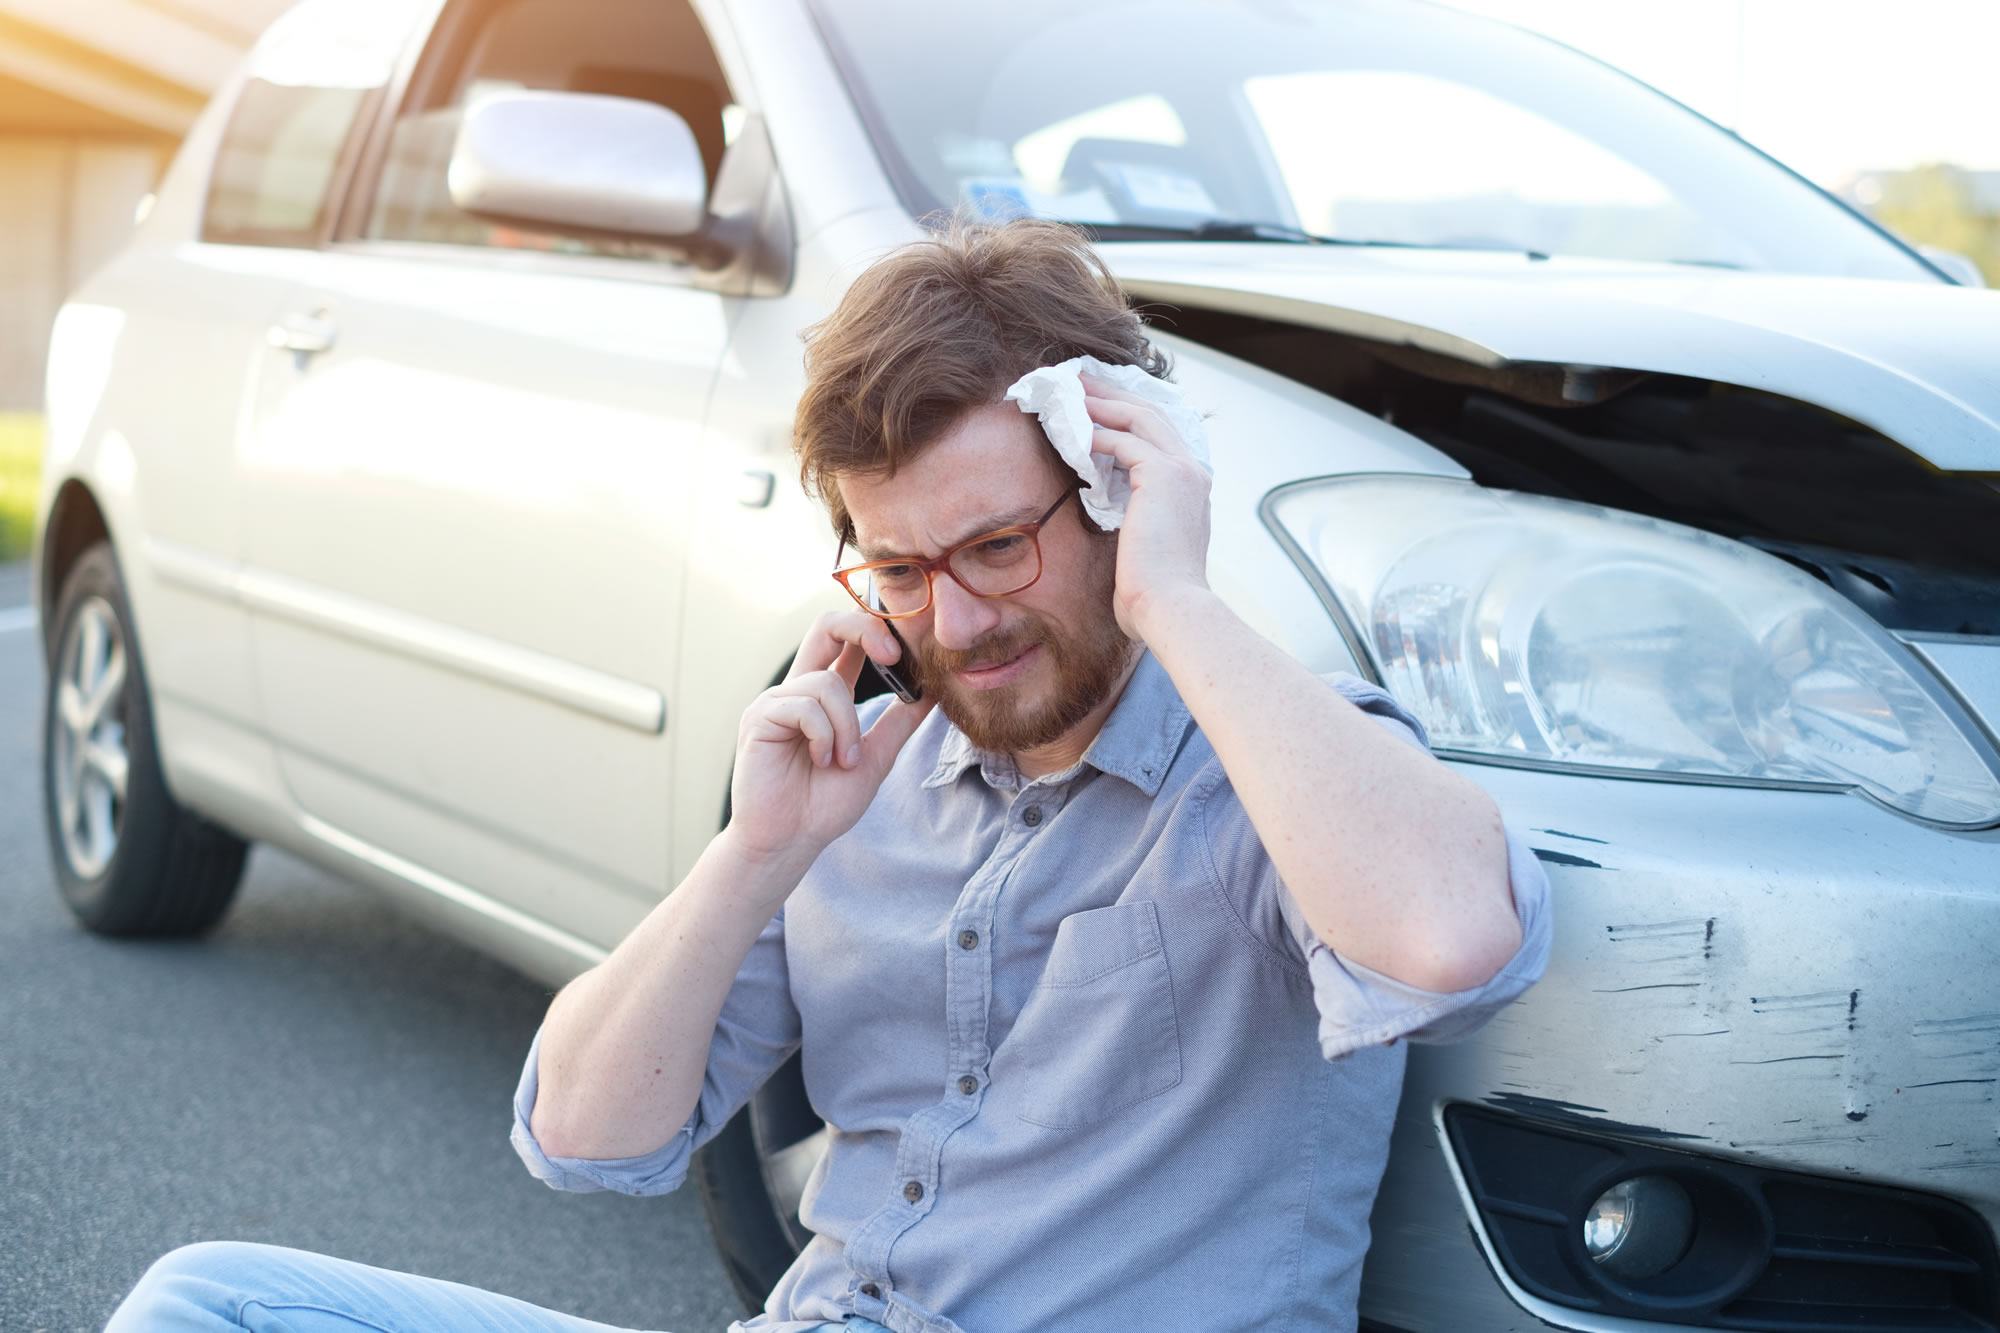 Car Accident, Road Traffic Injuries, Car Crash - No Win, No Fee / Accident & Personal Injury Solicitors / Accident Claims UK